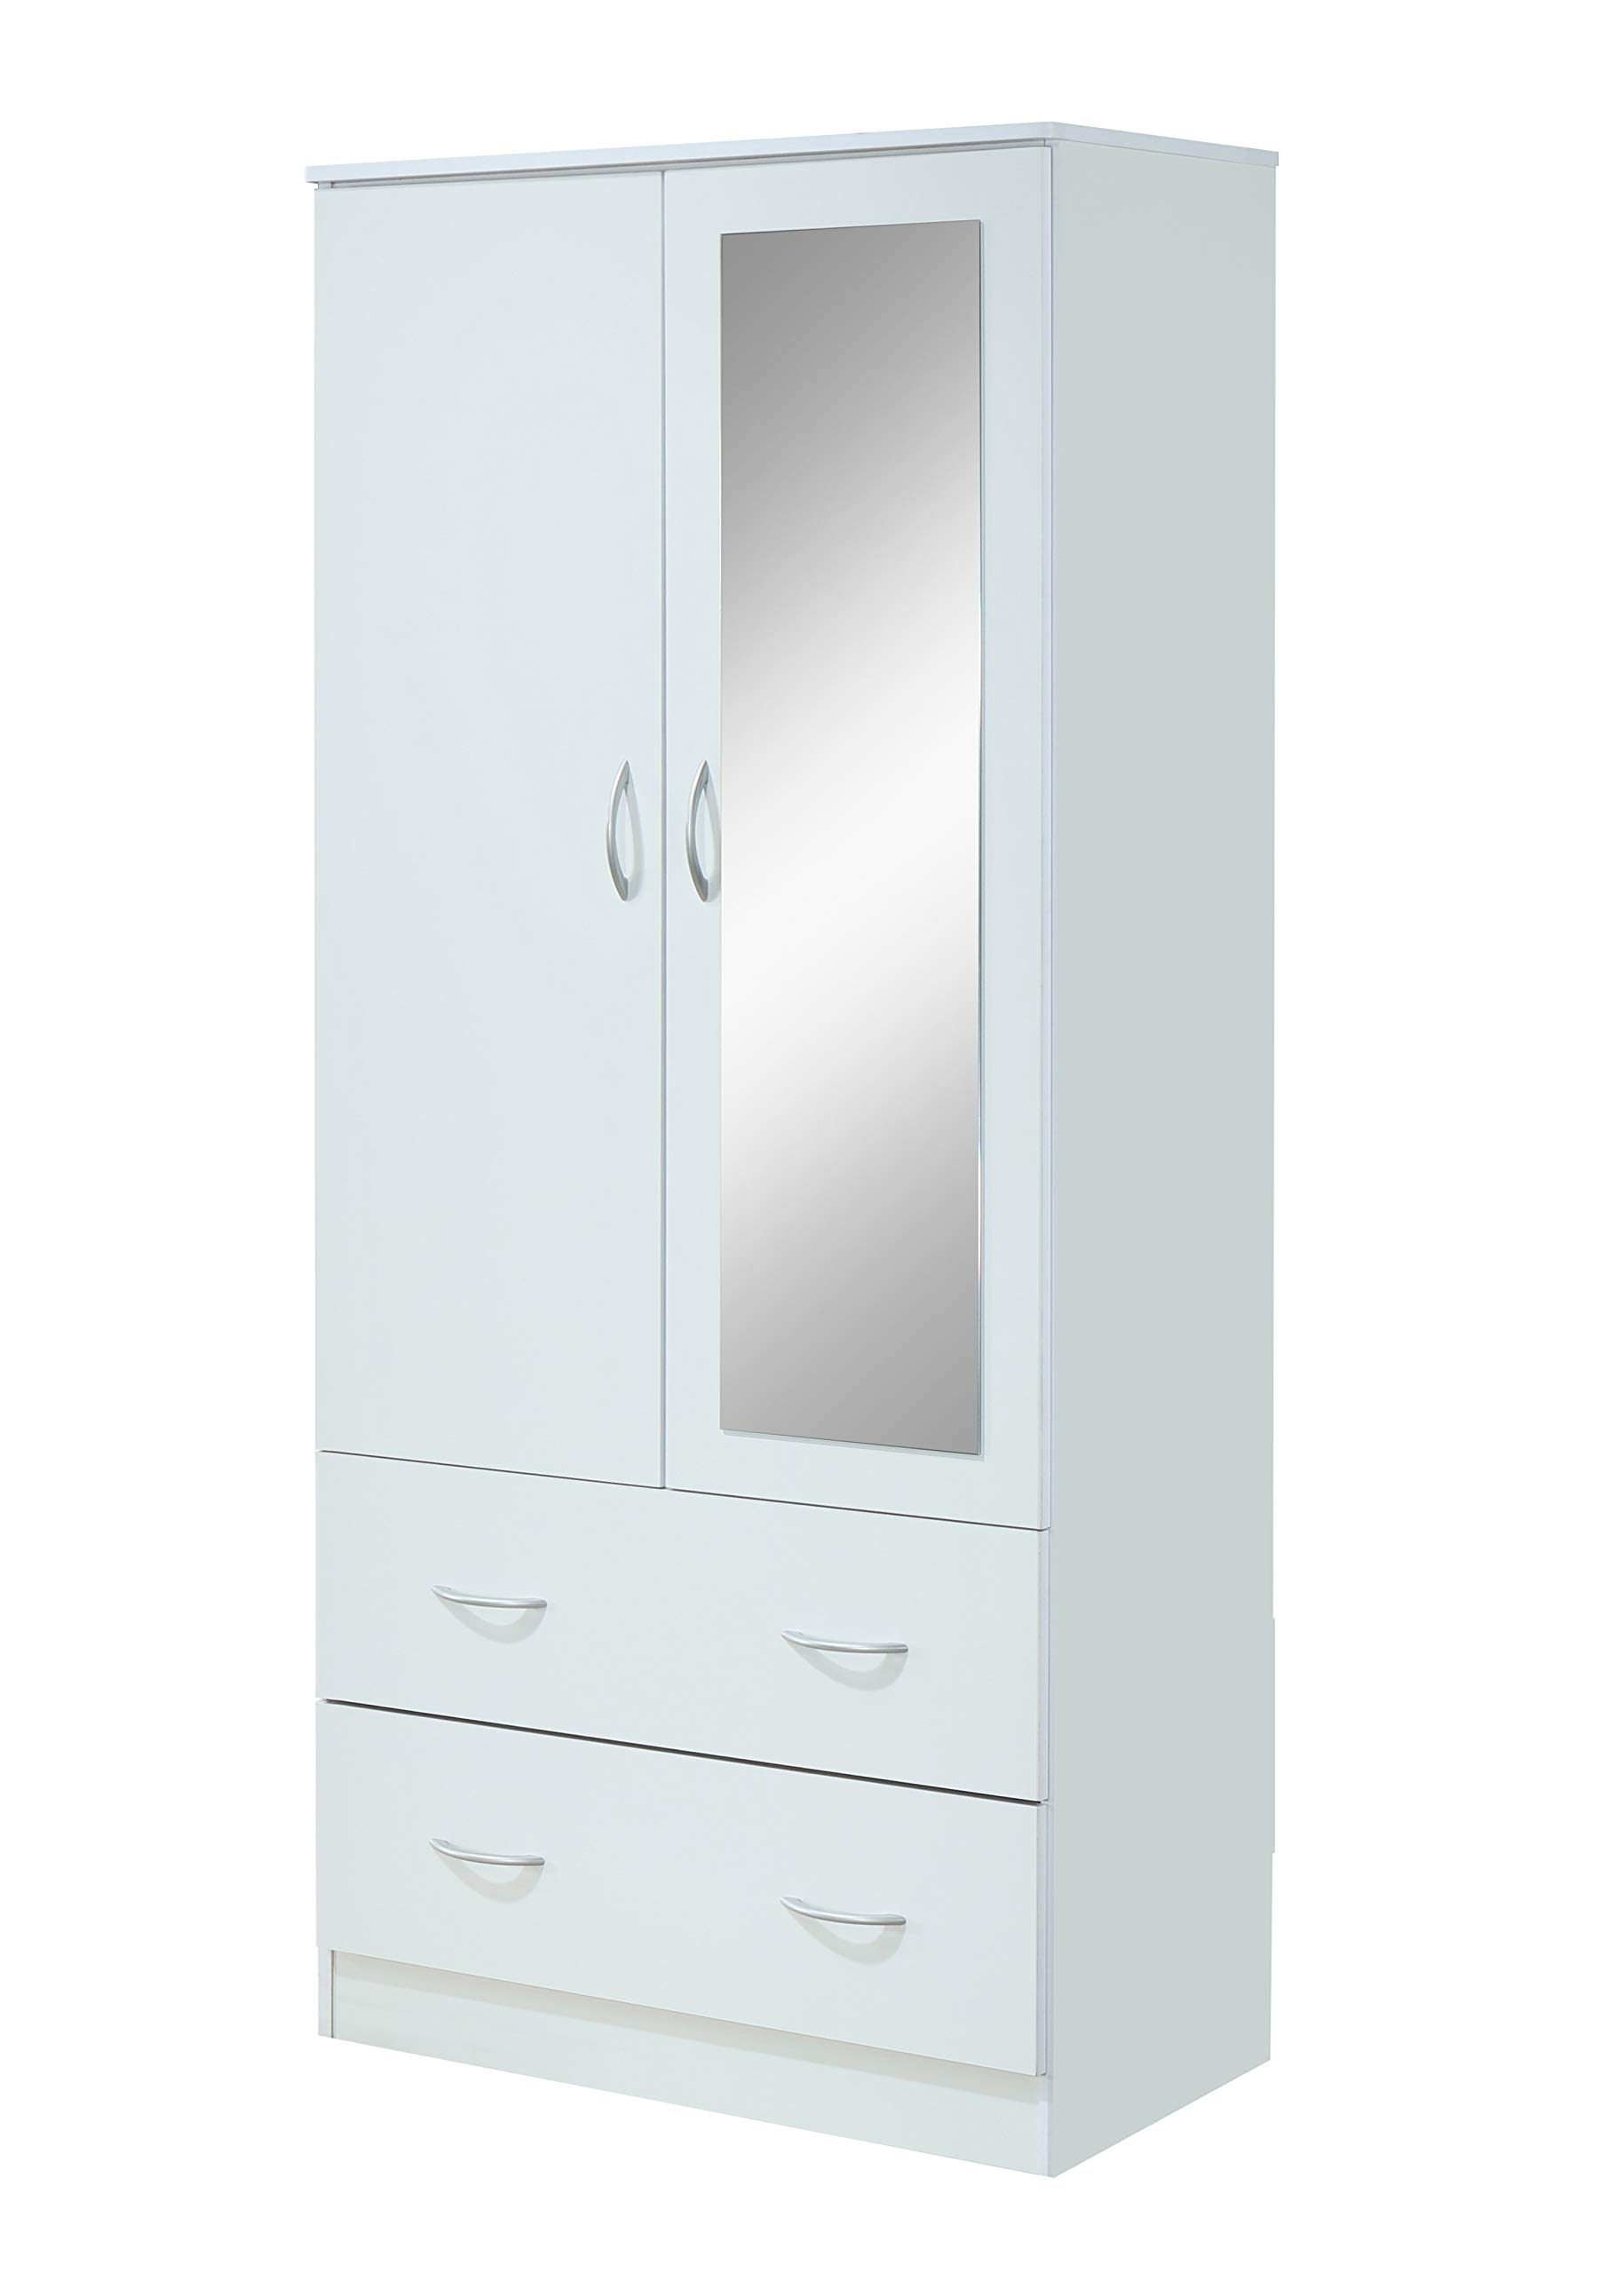 Hodedah HI882 Door 2-Drawers, Mirror and Clothing Rod in White Armoire,